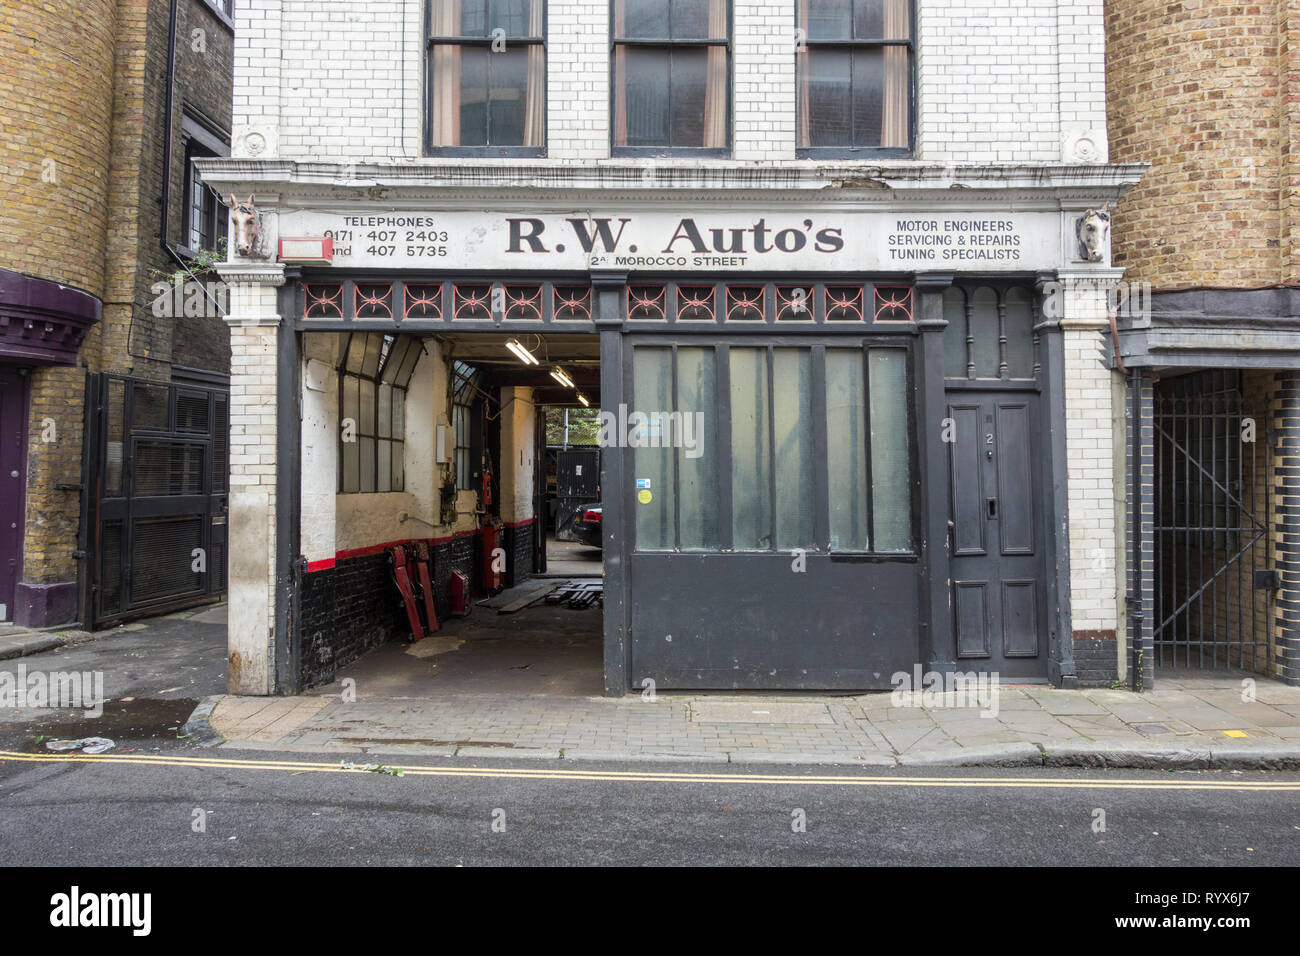 R.W. Autos, Morocco Street, Southwark, London, UK - Stock Image